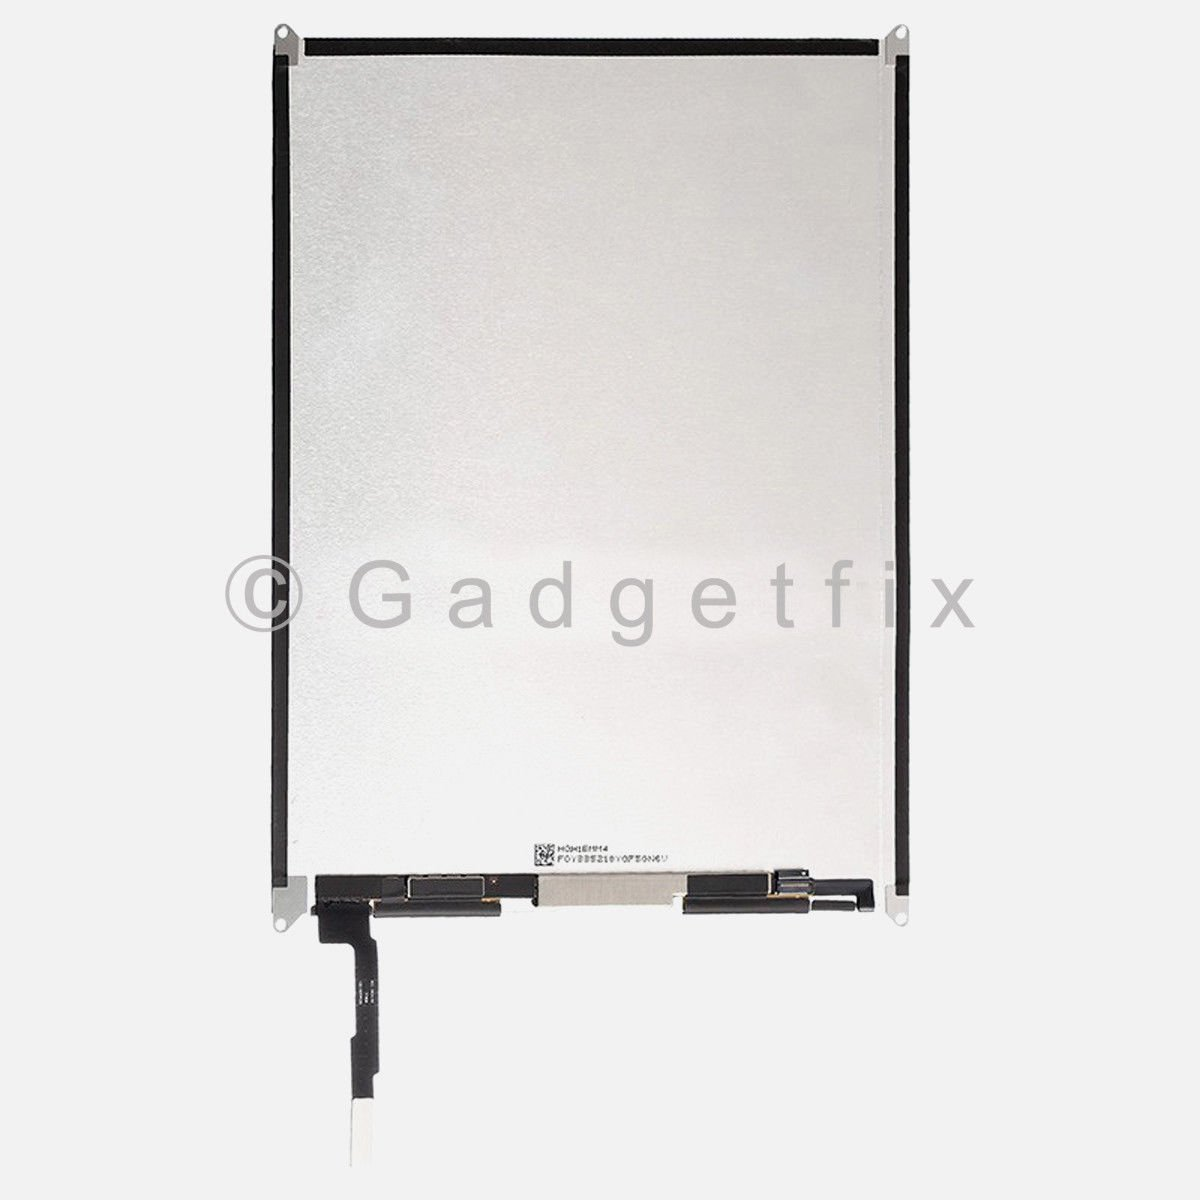 LCD Display Screen Replacement Part for 2017 iPad 5th Gen Generation A1822 A1823